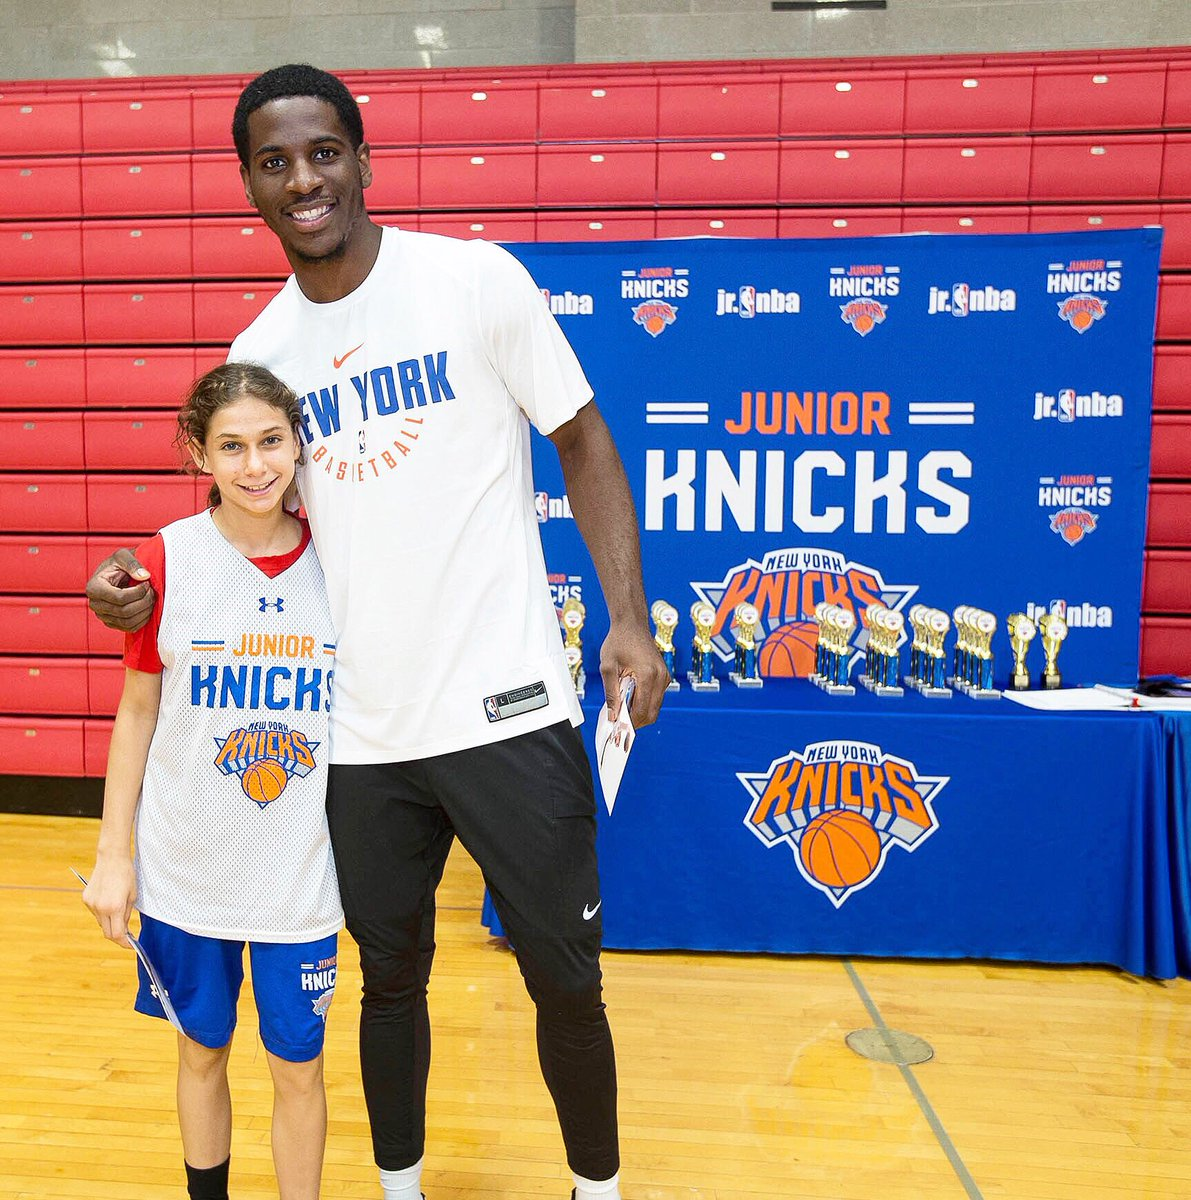 That time @wholeteamdot helped us hand out awards at #JrKnicks Summer Camp #FlashbackFriday 💪 Have you signed up yet? ➡️http://www.nba.com/knicks/camp